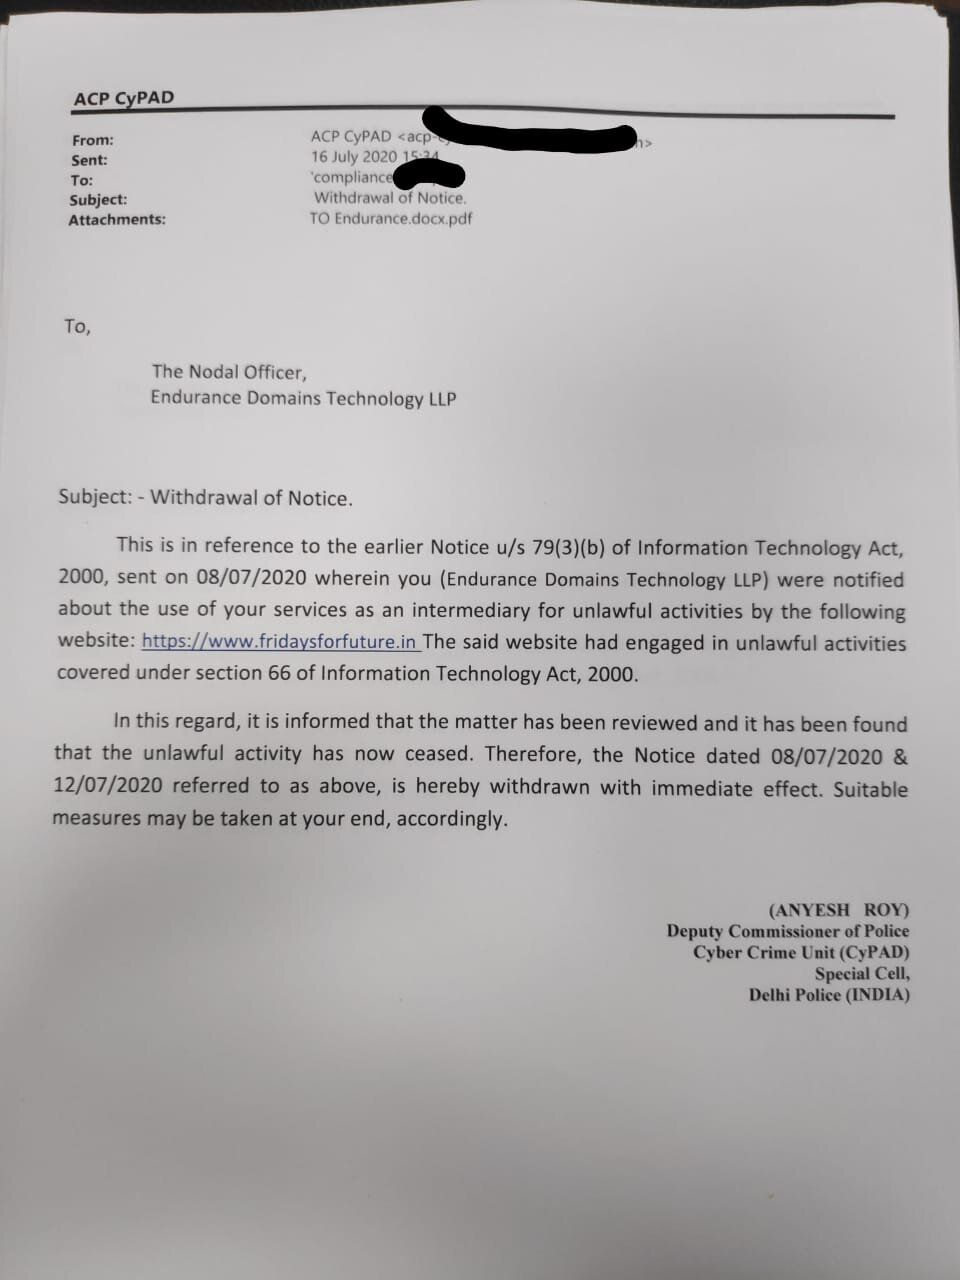 Copy of the email shared with HuffPost India by DCP Anyesh Roy mentioning that the two notices have been...